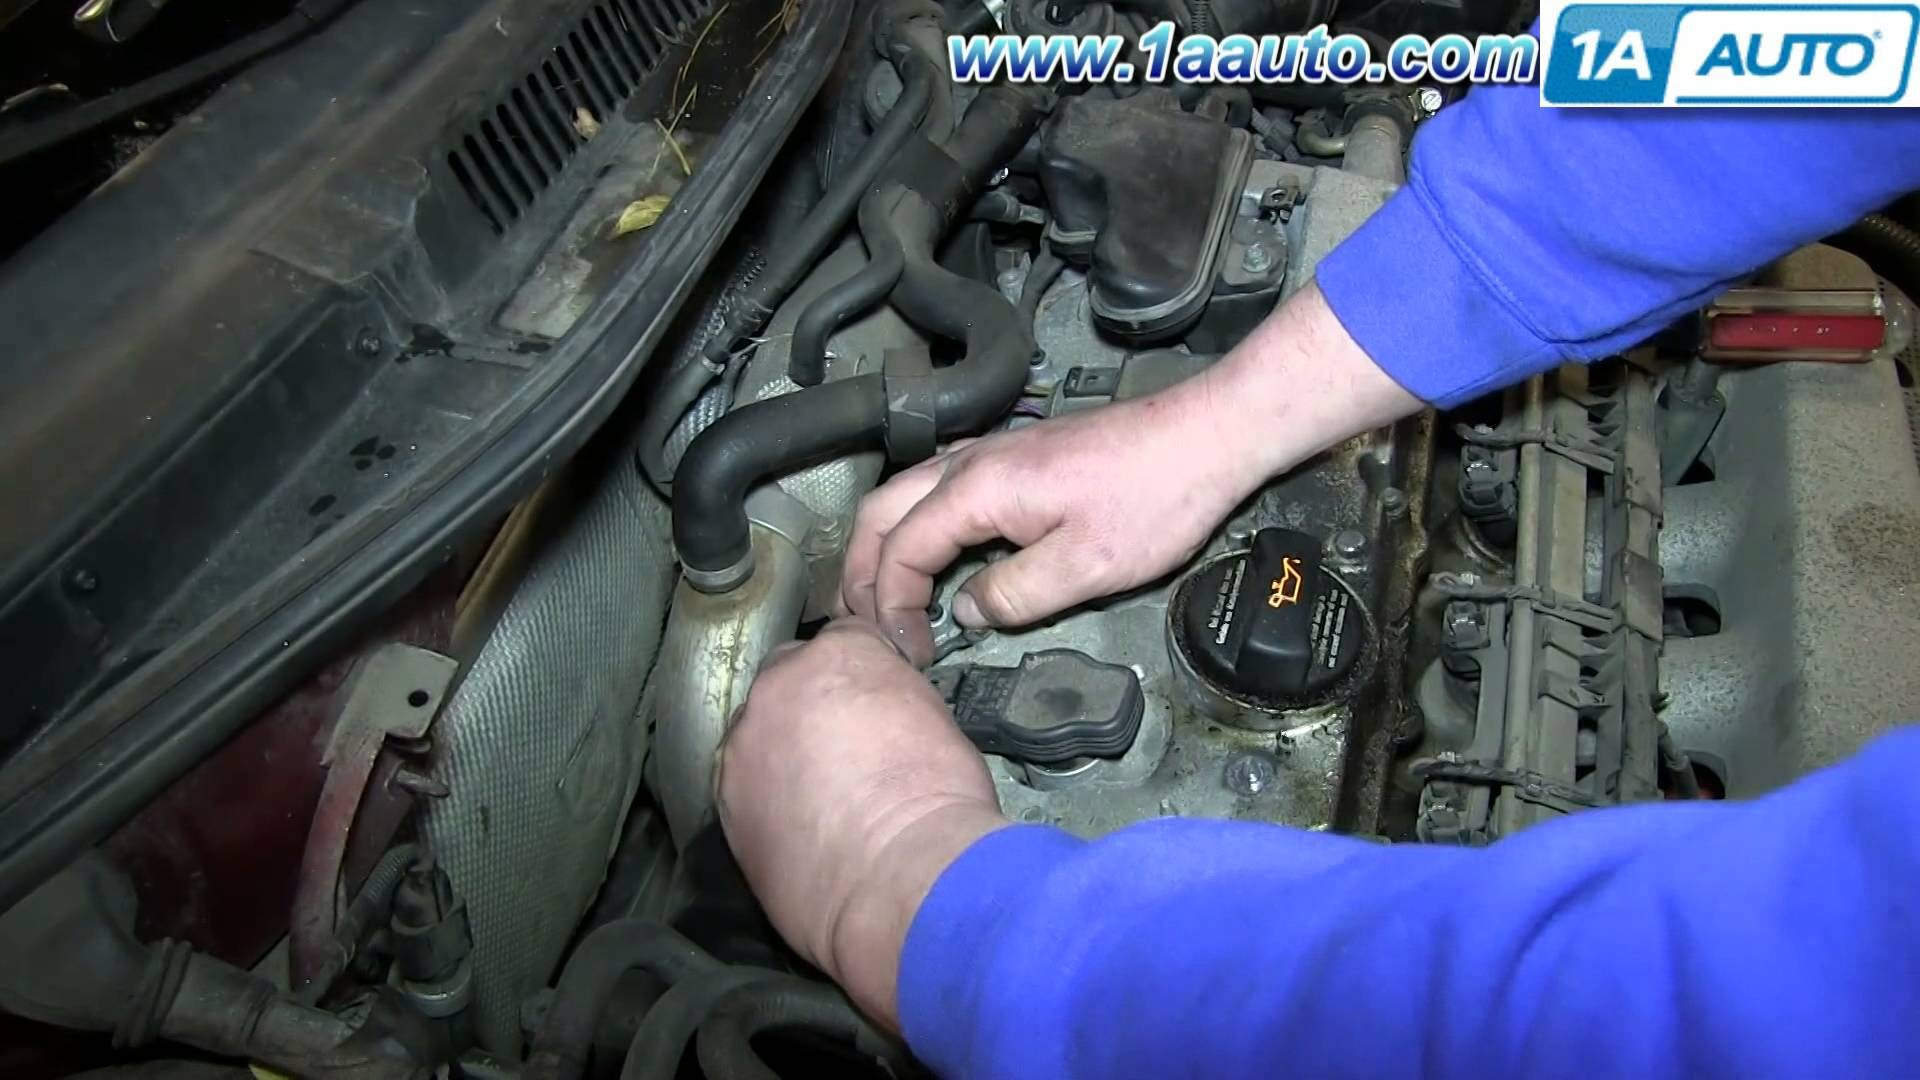 2001 Jetta Engine Diagram How to Install Replace Engine Ignition Coil 2001 05 Vw Jetta Of 2001 Jetta Engine Diagram